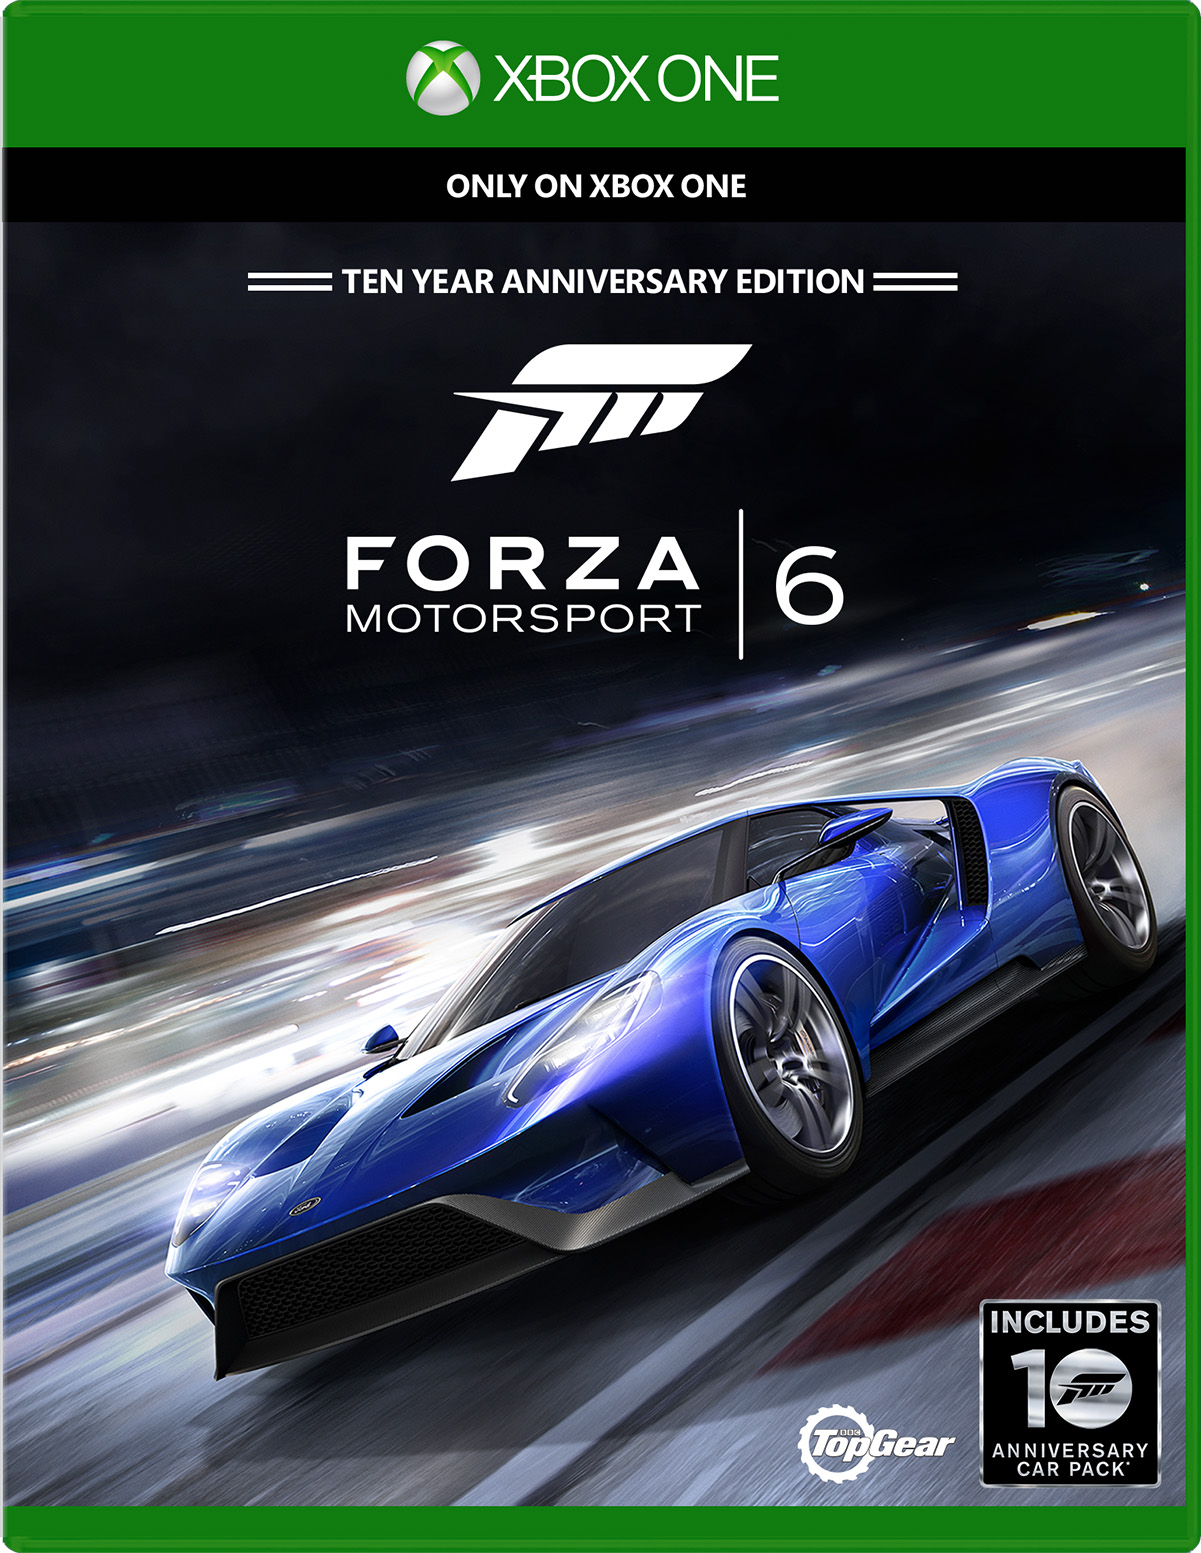 Forza Motorsport 6 for Xbox One Deal